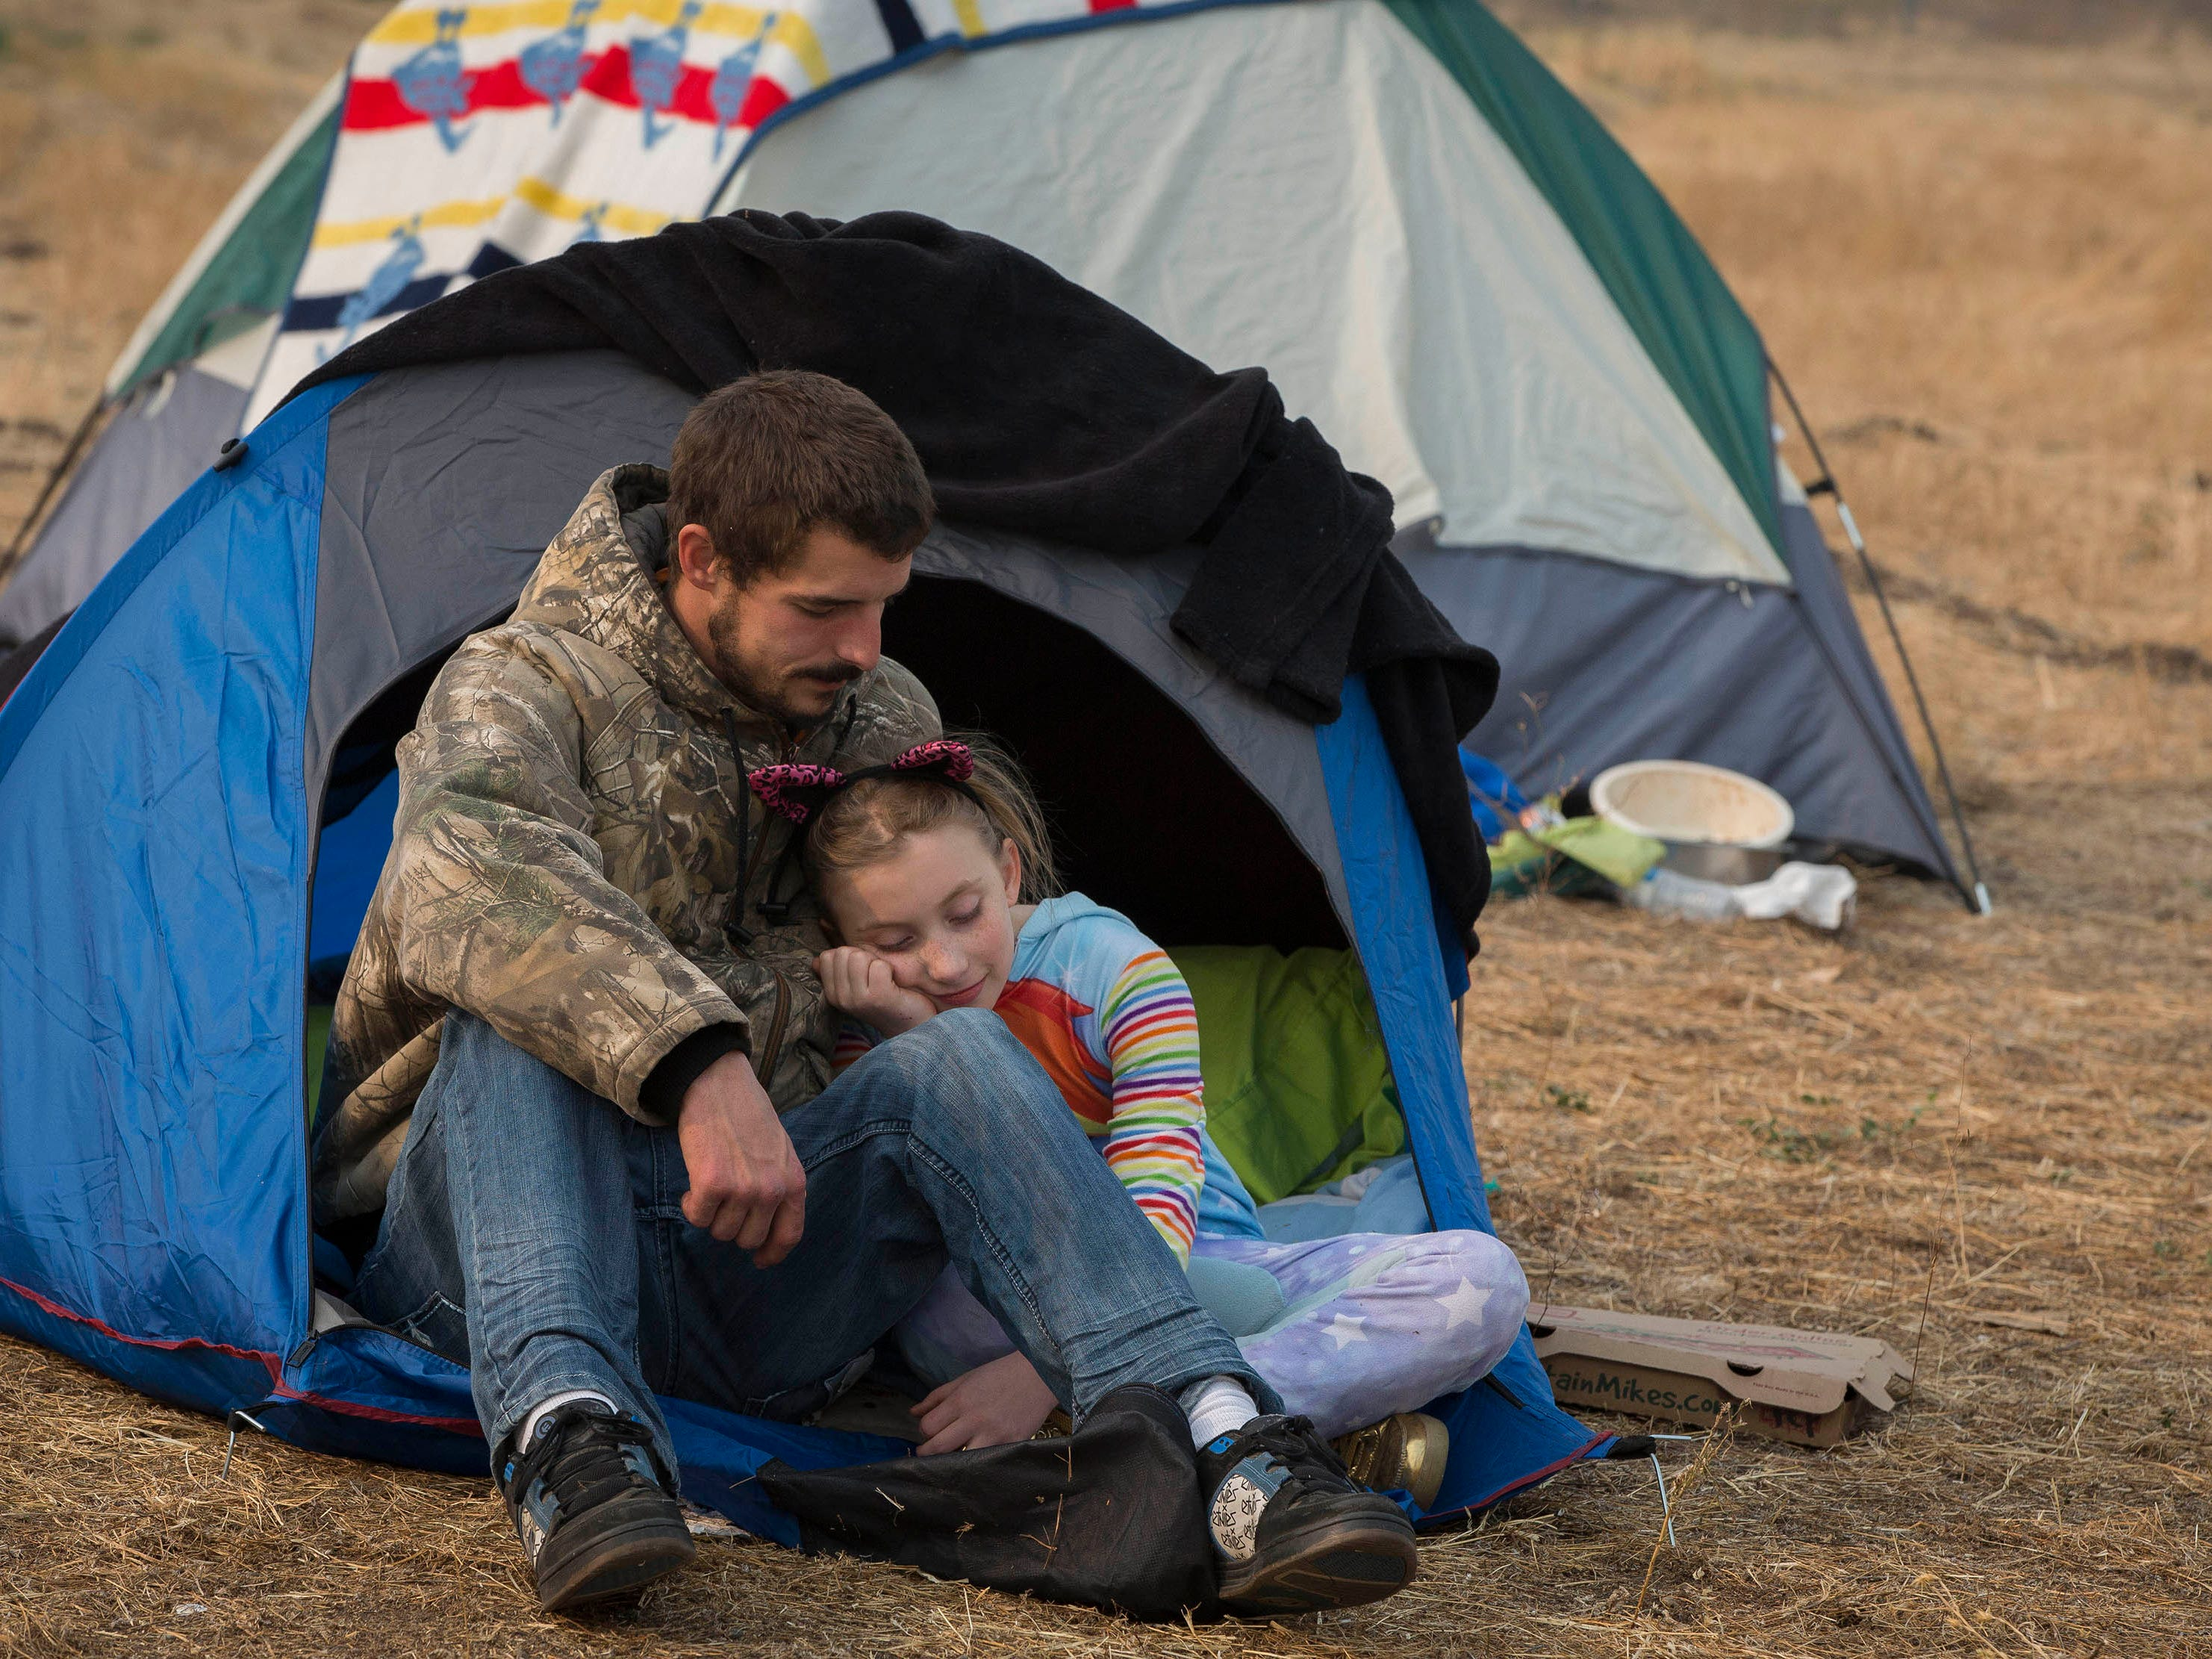 Ryan Belcher, left, comforts his daughter Zoeylee, 10, where they are camping with their family at the Walmart in Chico, Calif. The Belcher family lost their home and vehicles to the Camp Fire.